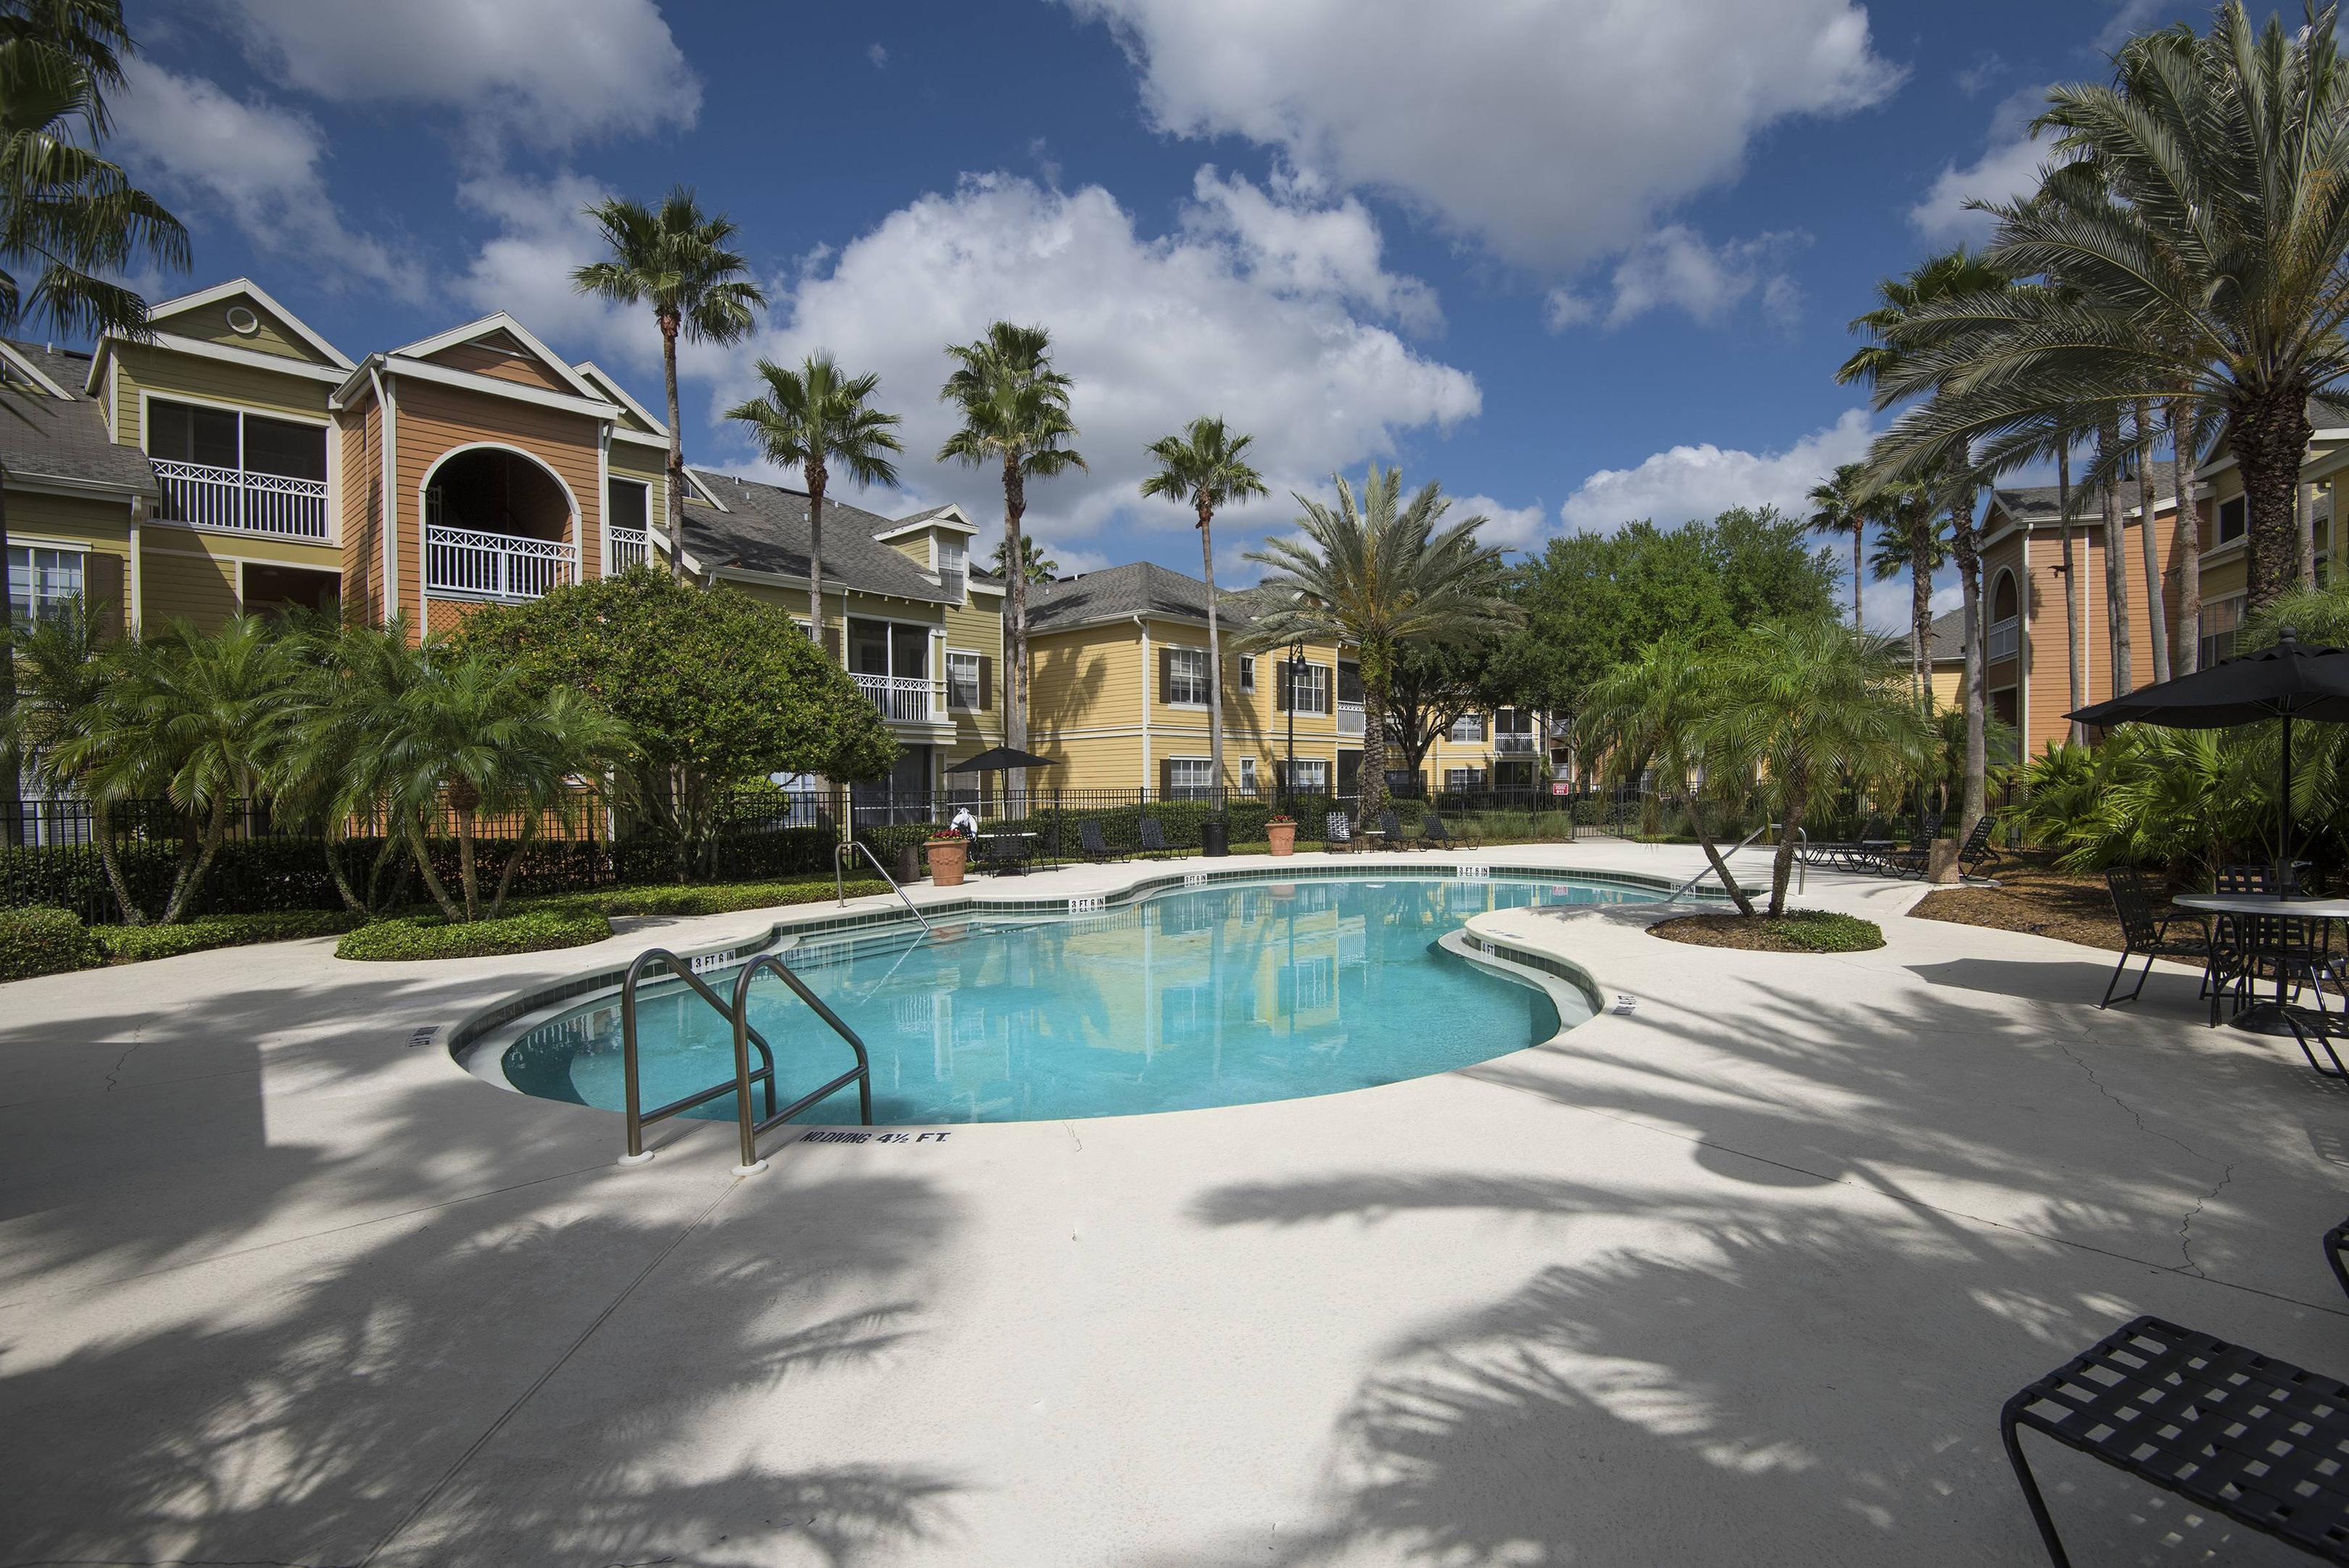 20 best luxury apartments in orlando fl with pictures solutioingenieria Gallery